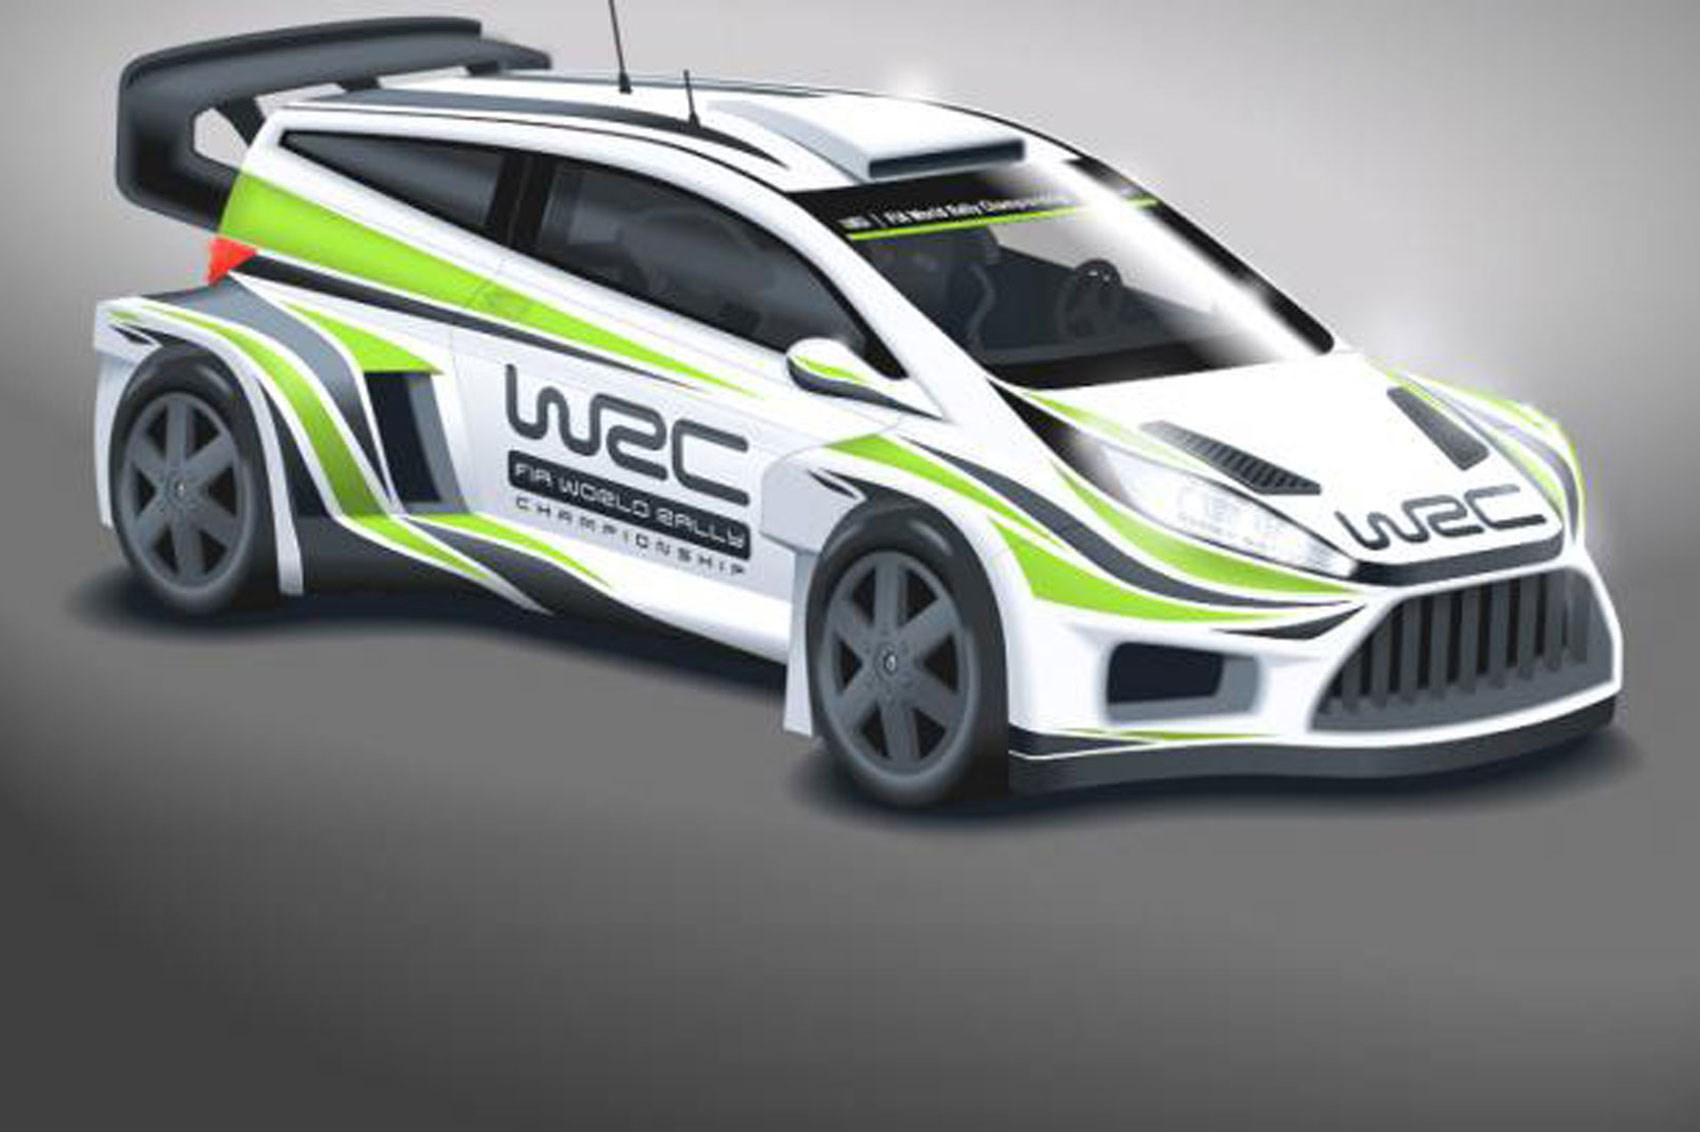 Ultrablogus  Splendid Wild New Look For Wrc Cars In  By Car Magazine With Remarkable Wrc Cars Will Get Wider Bodies Bigger Wings And More Power For  With Amazing X Interior Dimensions Also  Honda Accord Interior In Addition Bmw I  Interior And Dassault Falcon Interior As Well As What Can I Use To Clean Car Interior Additionally I Interior Photos From Carmagazinecouk With Ultrablogus  Remarkable Wild New Look For Wrc Cars In  By Car Magazine With Amazing Wrc Cars Will Get Wider Bodies Bigger Wings And More Power For  And Splendid X Interior Dimensions Also  Honda Accord Interior In Addition Bmw I  Interior From Carmagazinecouk